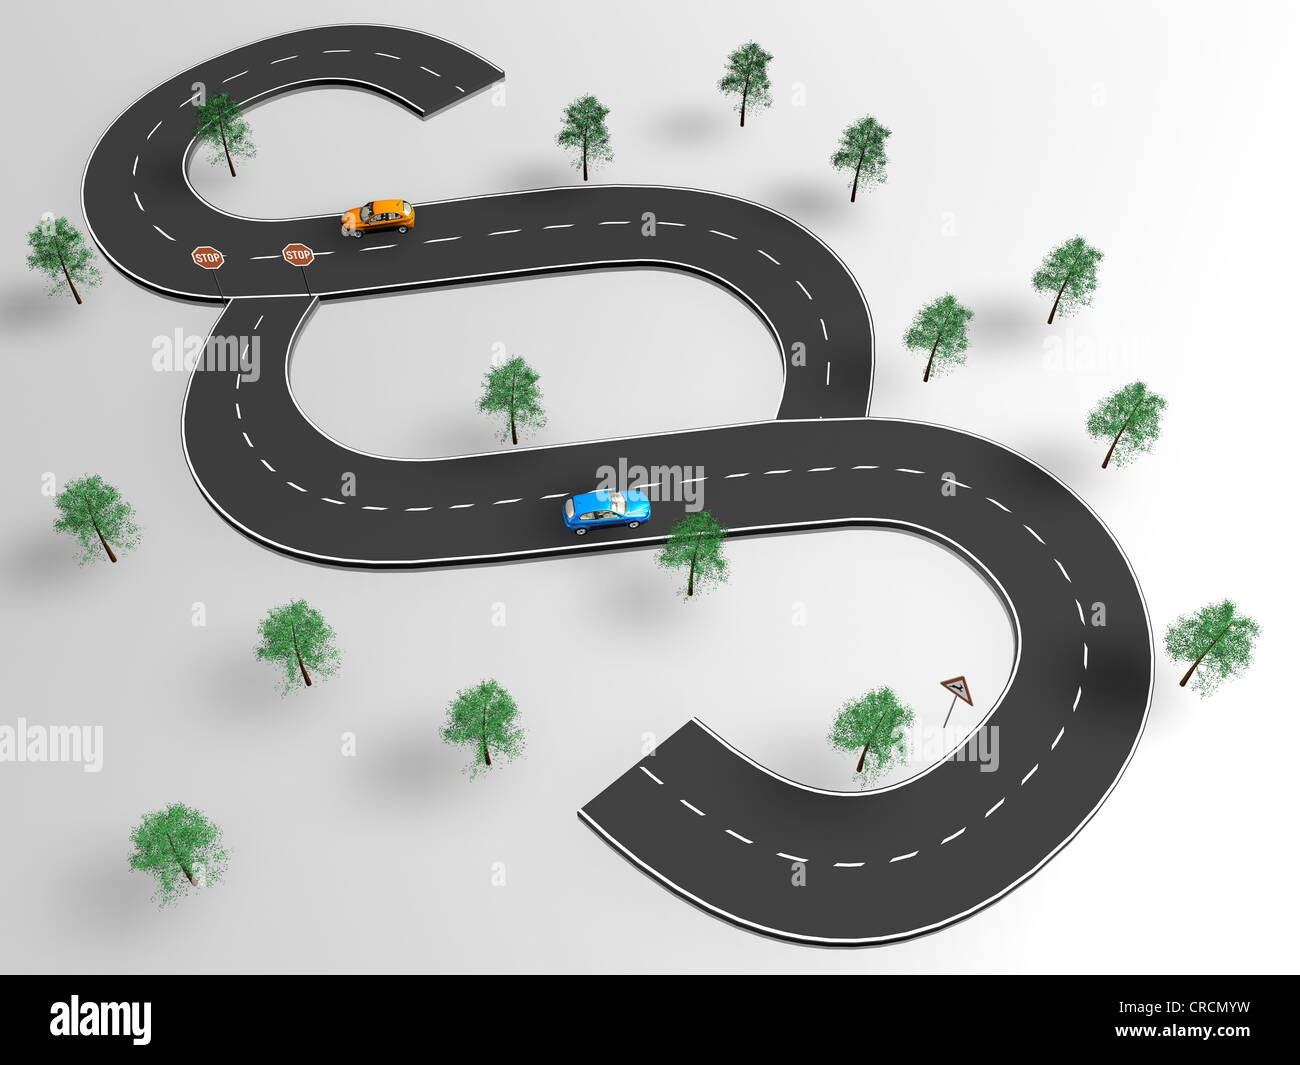 Cars on a road shaped like a section sign illustration symbolic cars on a road shaped like a section sign illustration symbolic image for traffic law buycottarizona Choice Image